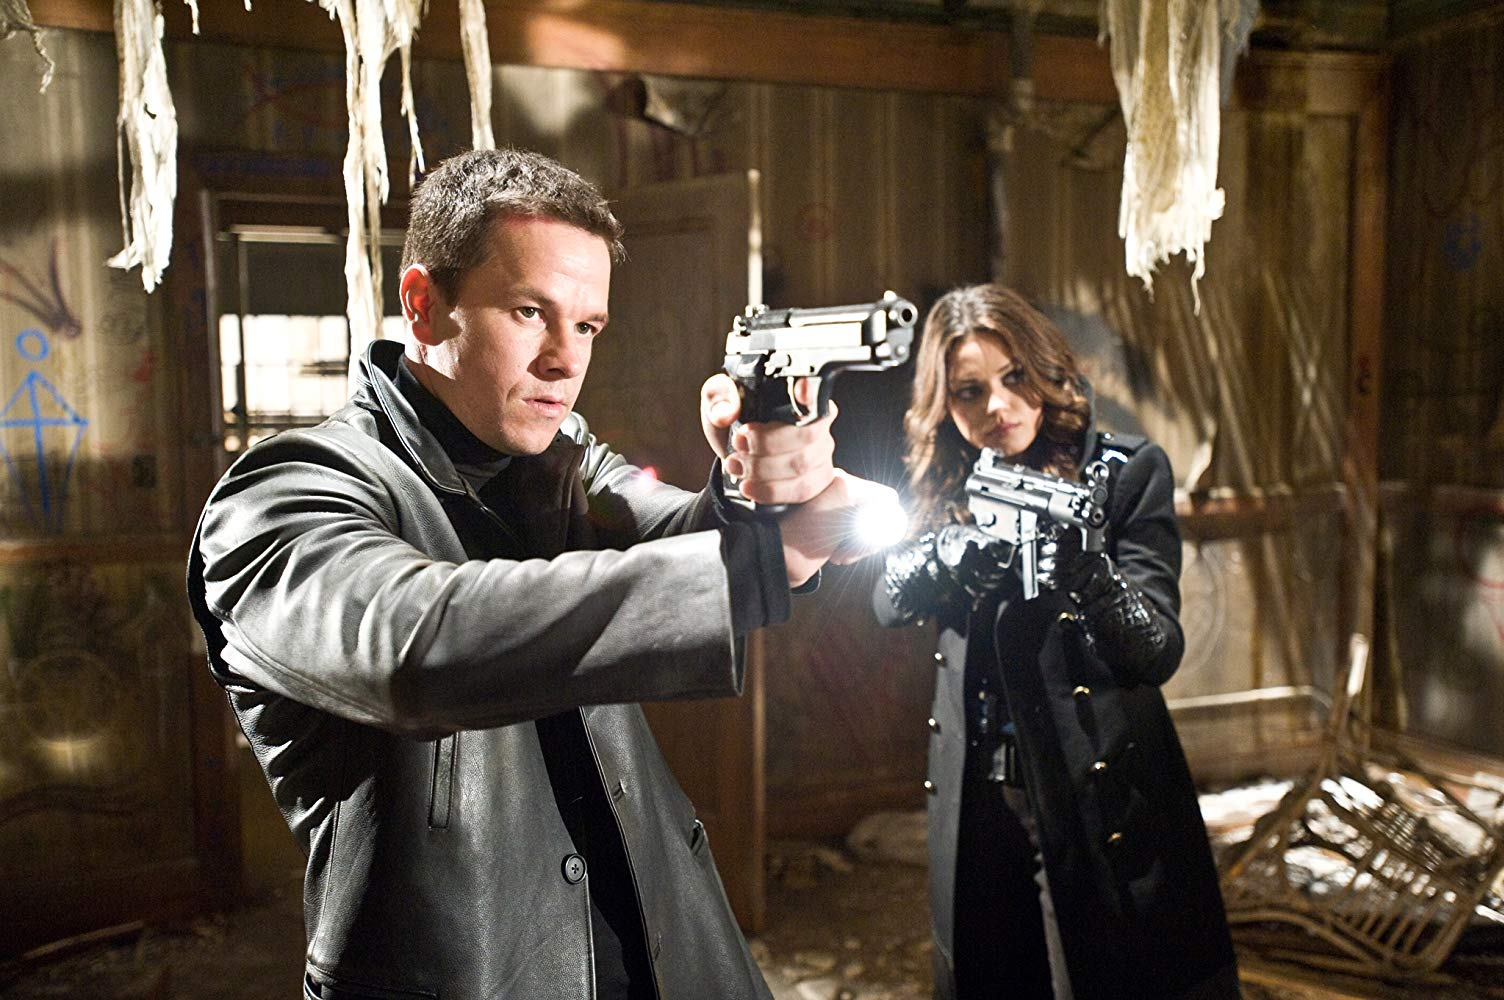 Max Payne (Mark Wahlberg) and Mona Sax (Mila Kunis) in Max Payne (2008)